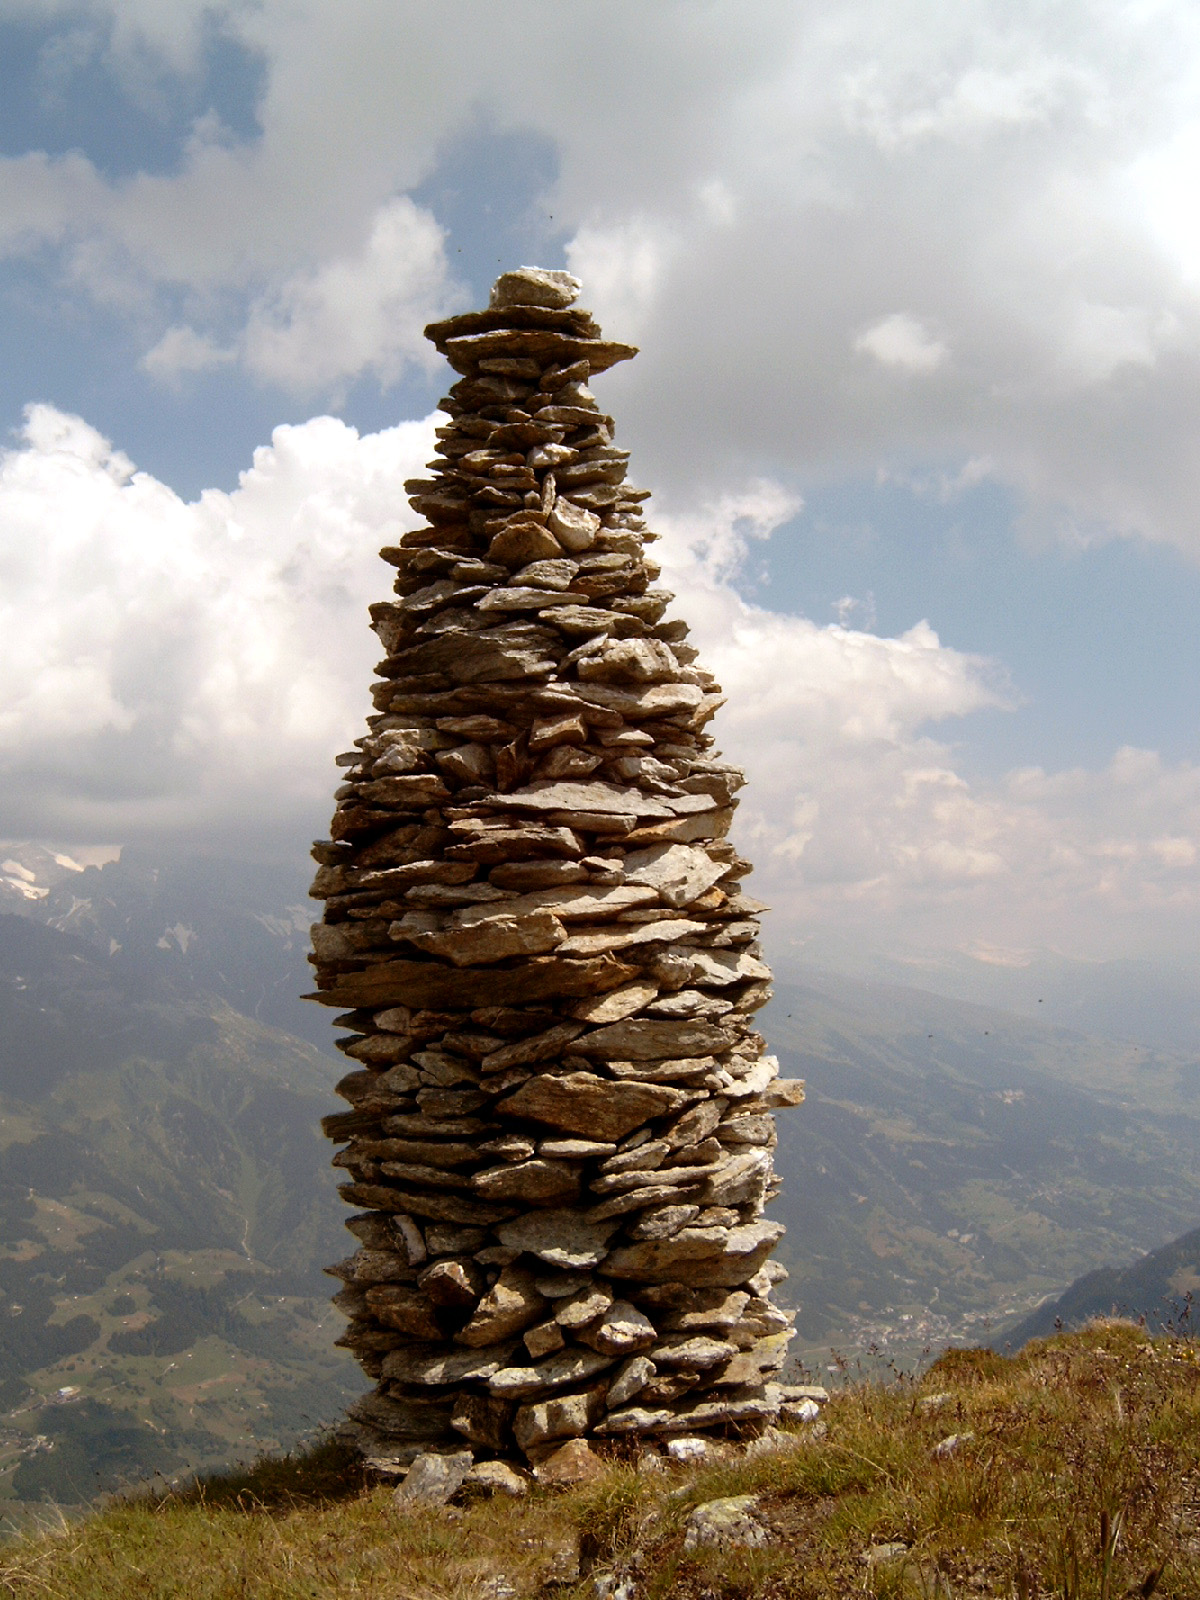 https://upload.wikimedia.org/wikipedia/commons/4/4a/Cairn_at_Garvera%2C_Surselva%2C_Graubuenden%2C_Switzerland.jpg